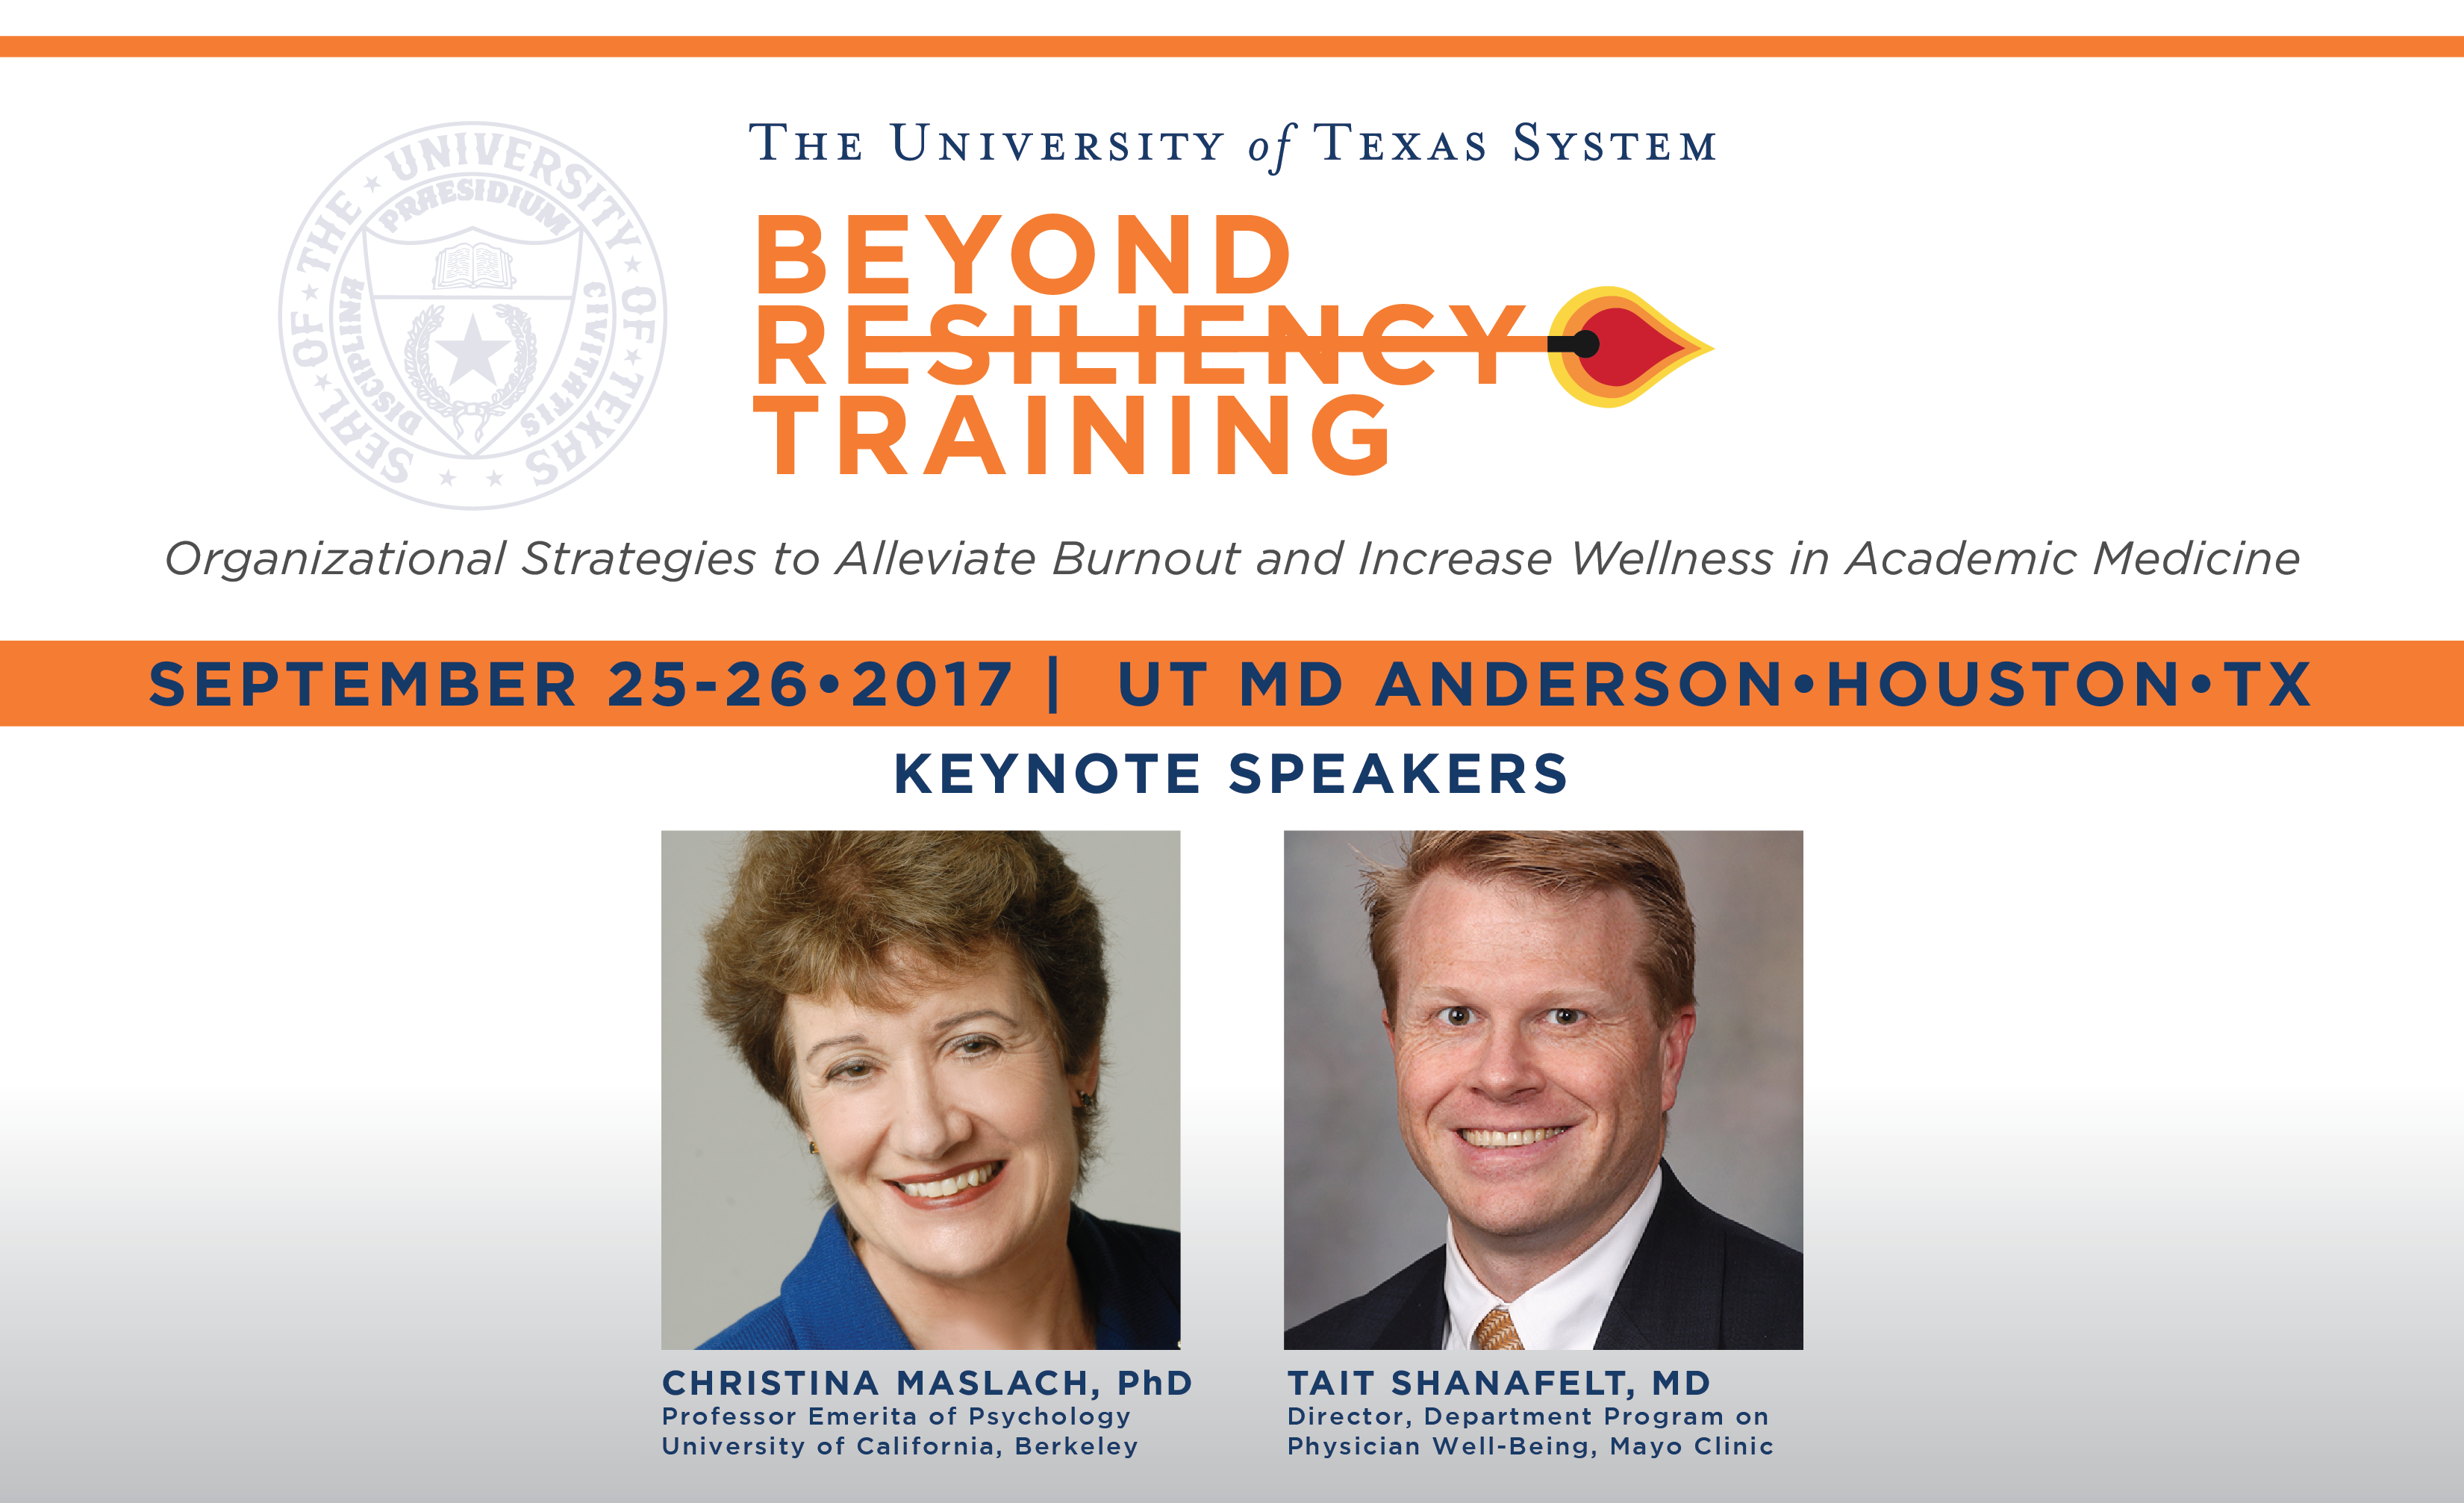 Beyond Resiliency Training: Organizational Strategies to Alleviate Burnout and Increase Wellness in Academic Medicine